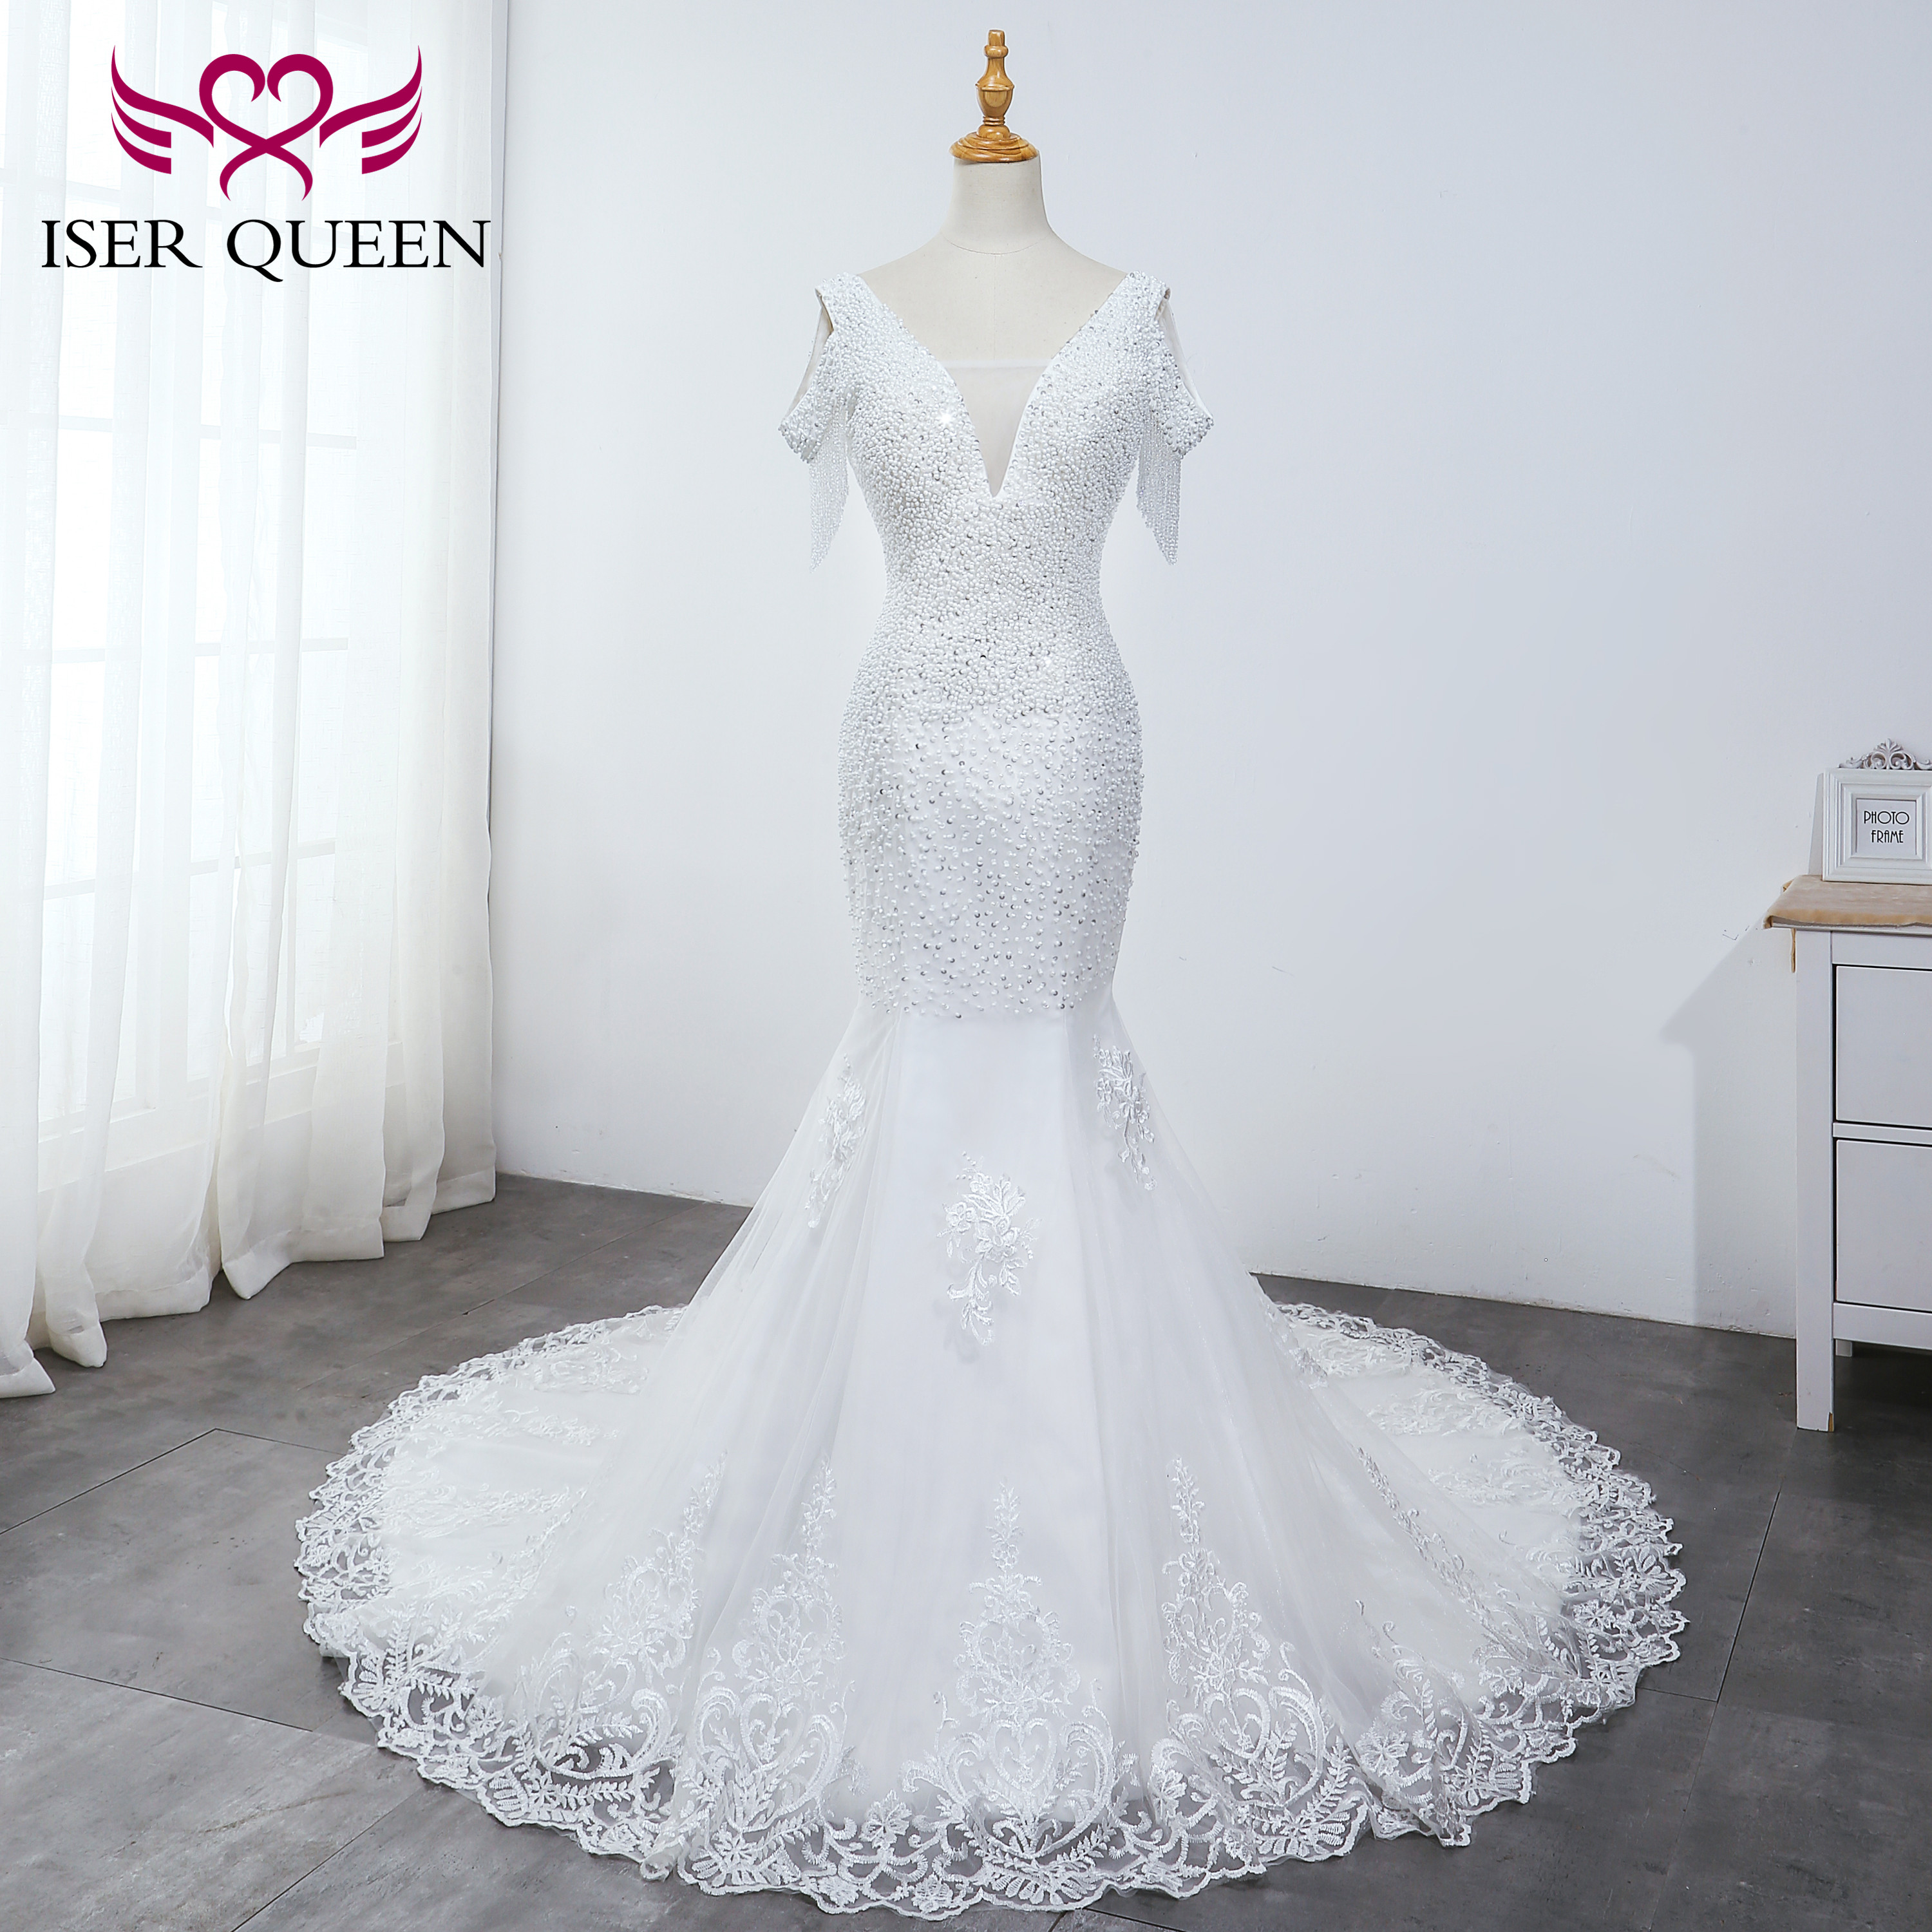 Pearls Sequined Beading Deep V-neck Cap Sleeves Mermaid Wedding Dresses Elegant Pure White Embroidered Lace On Net WX0037